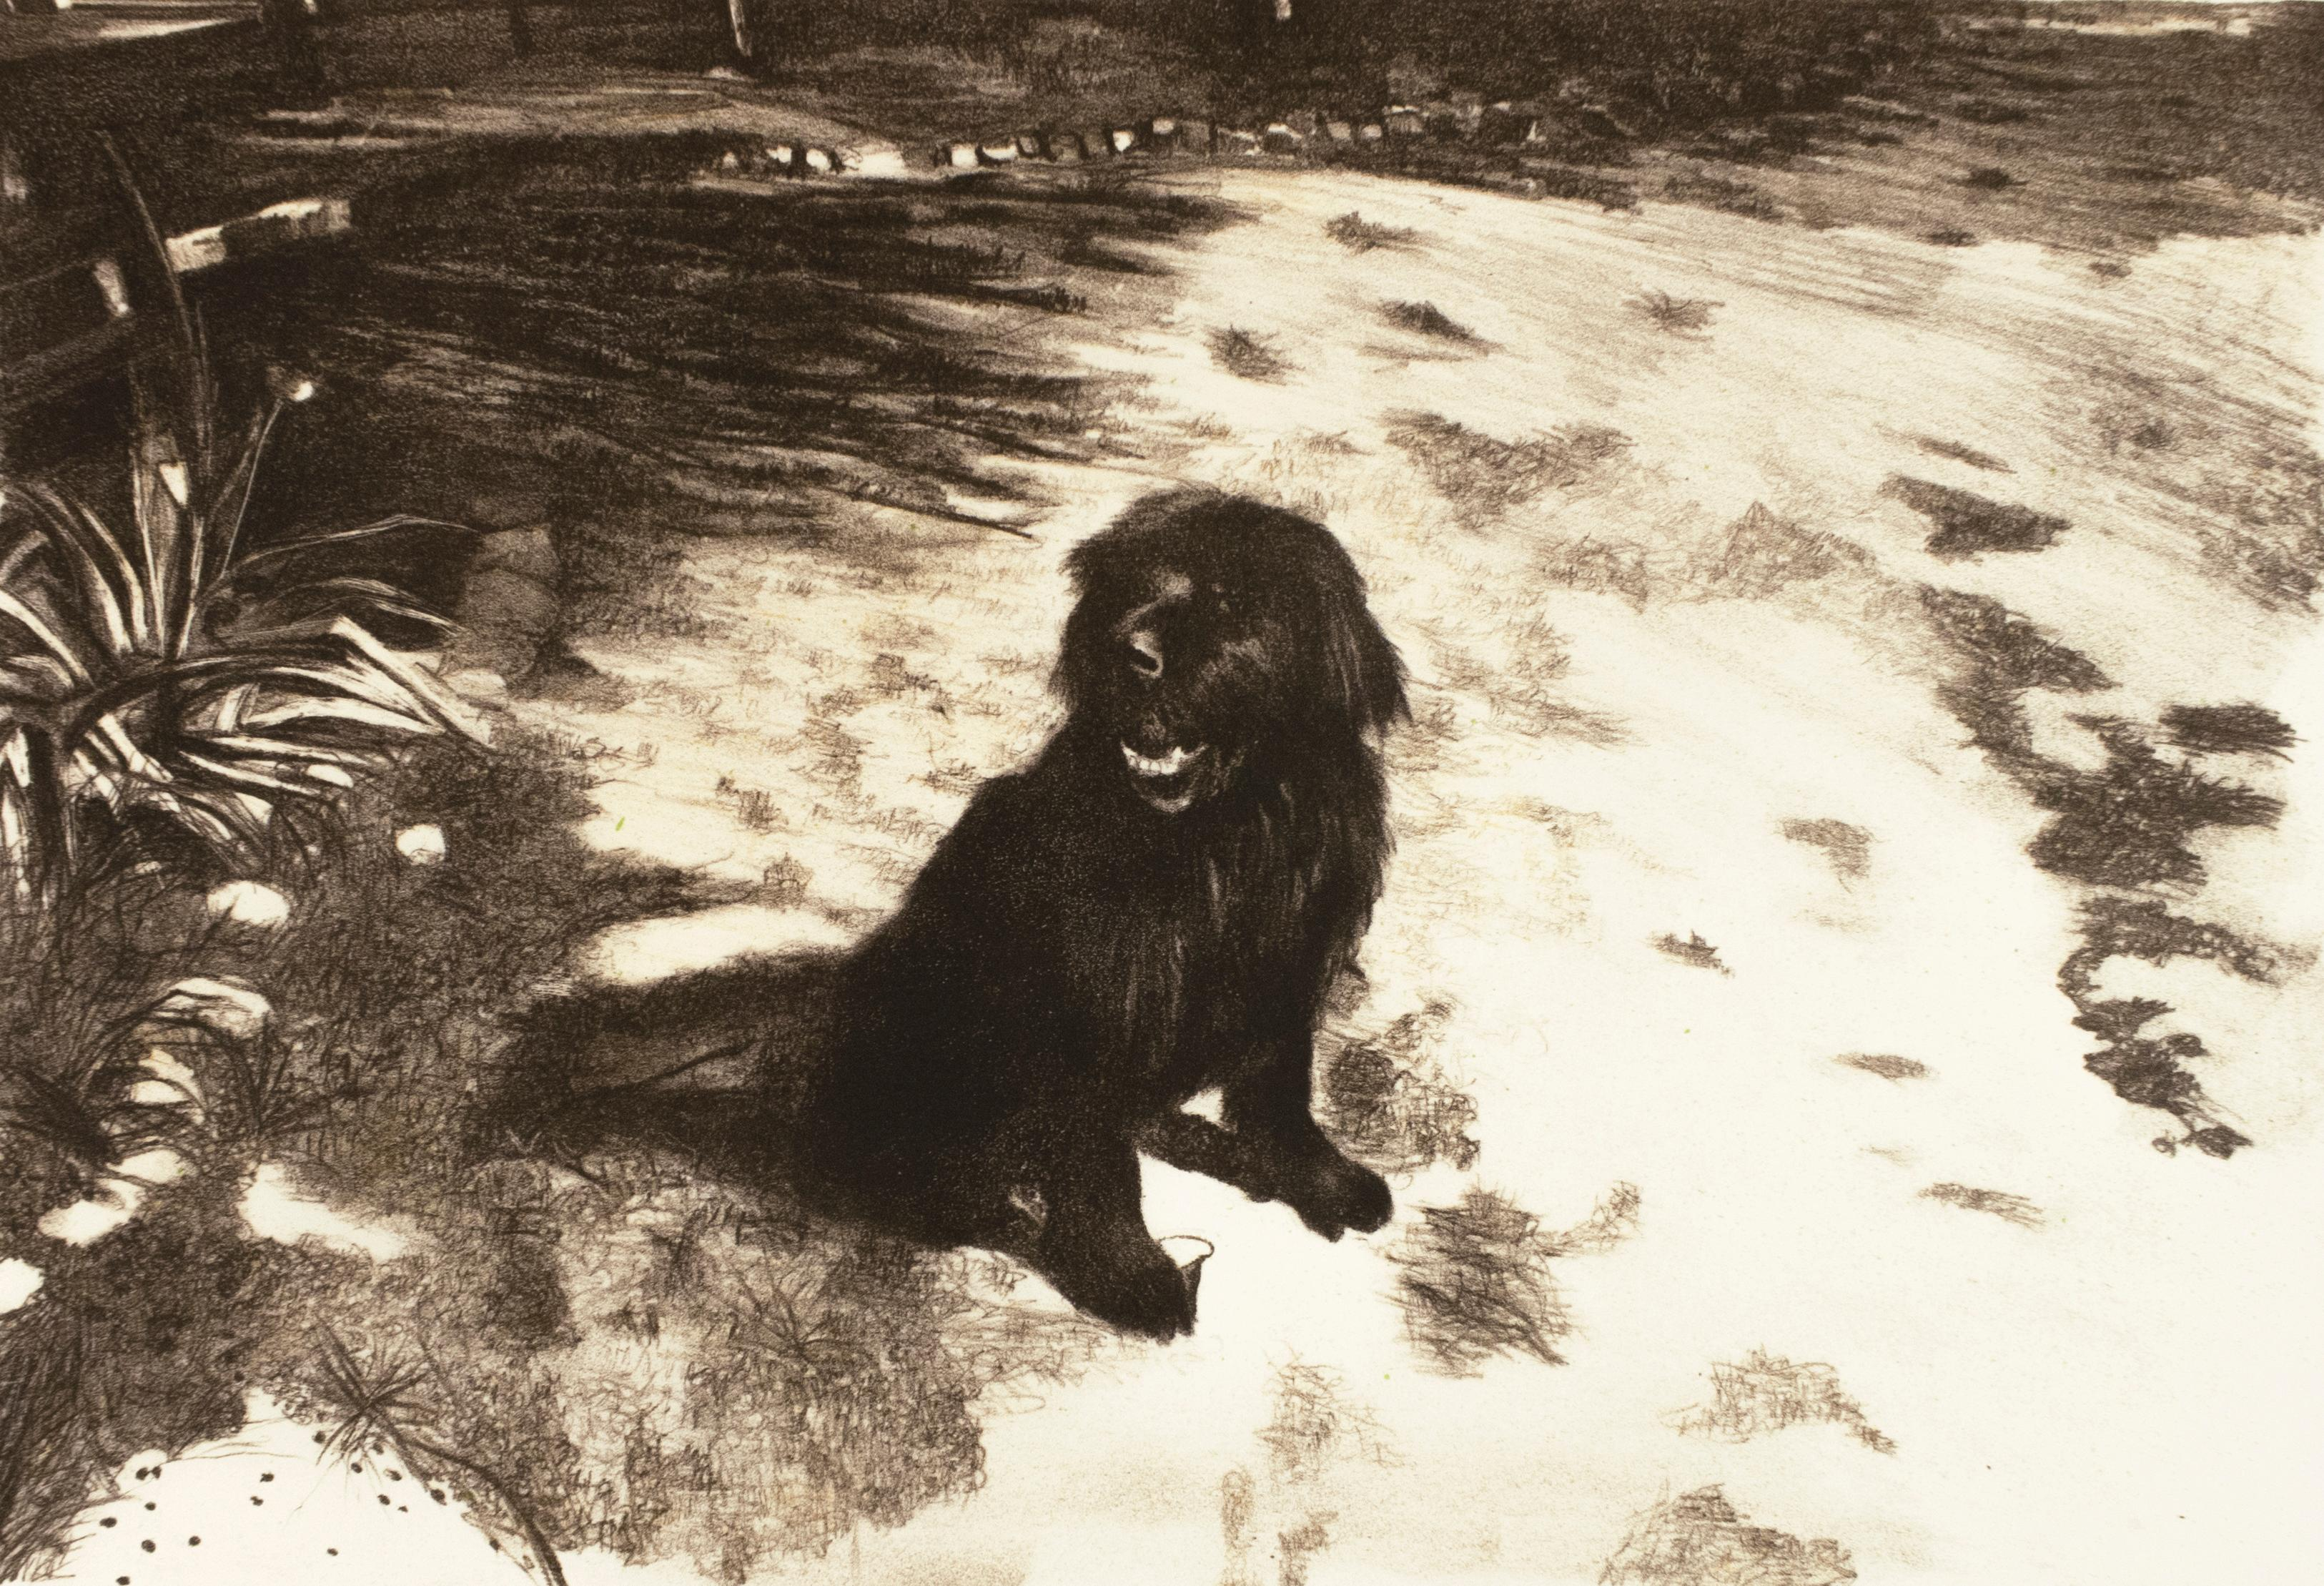 Dog: realist expressive black and white portrait drawing of pet dog in the sun